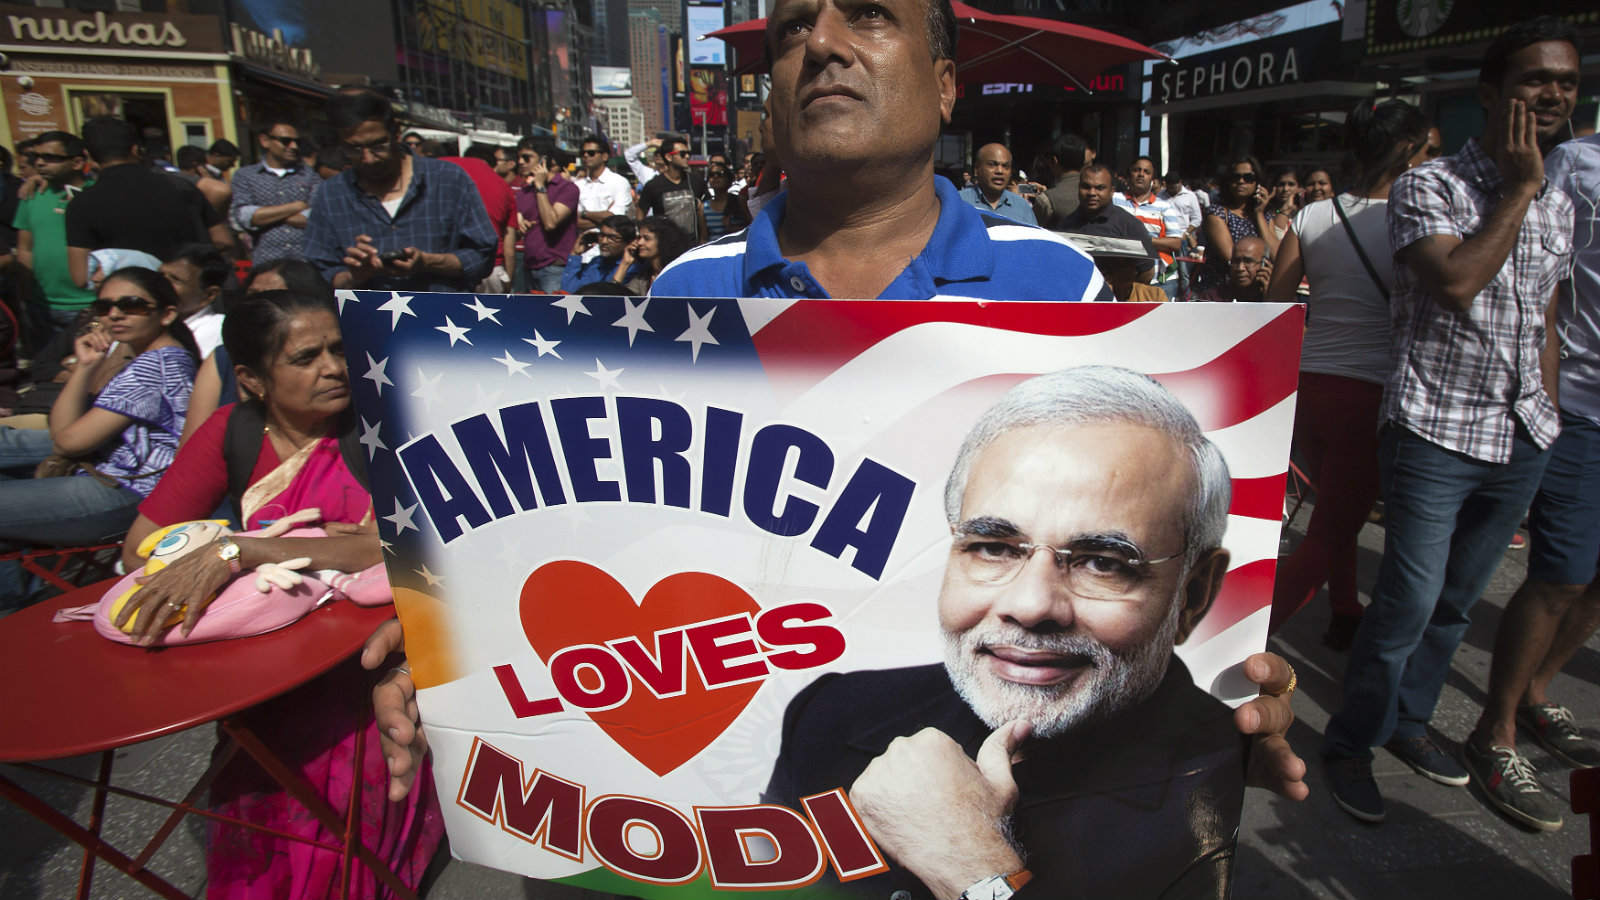 A supporter hold up an America Love Modi sign as he assembles with a large crowd of people in Times Square to watch the speech by India's Prime Minister Narendra Modi simulcast on a giant screen in New York September 28, 2014.